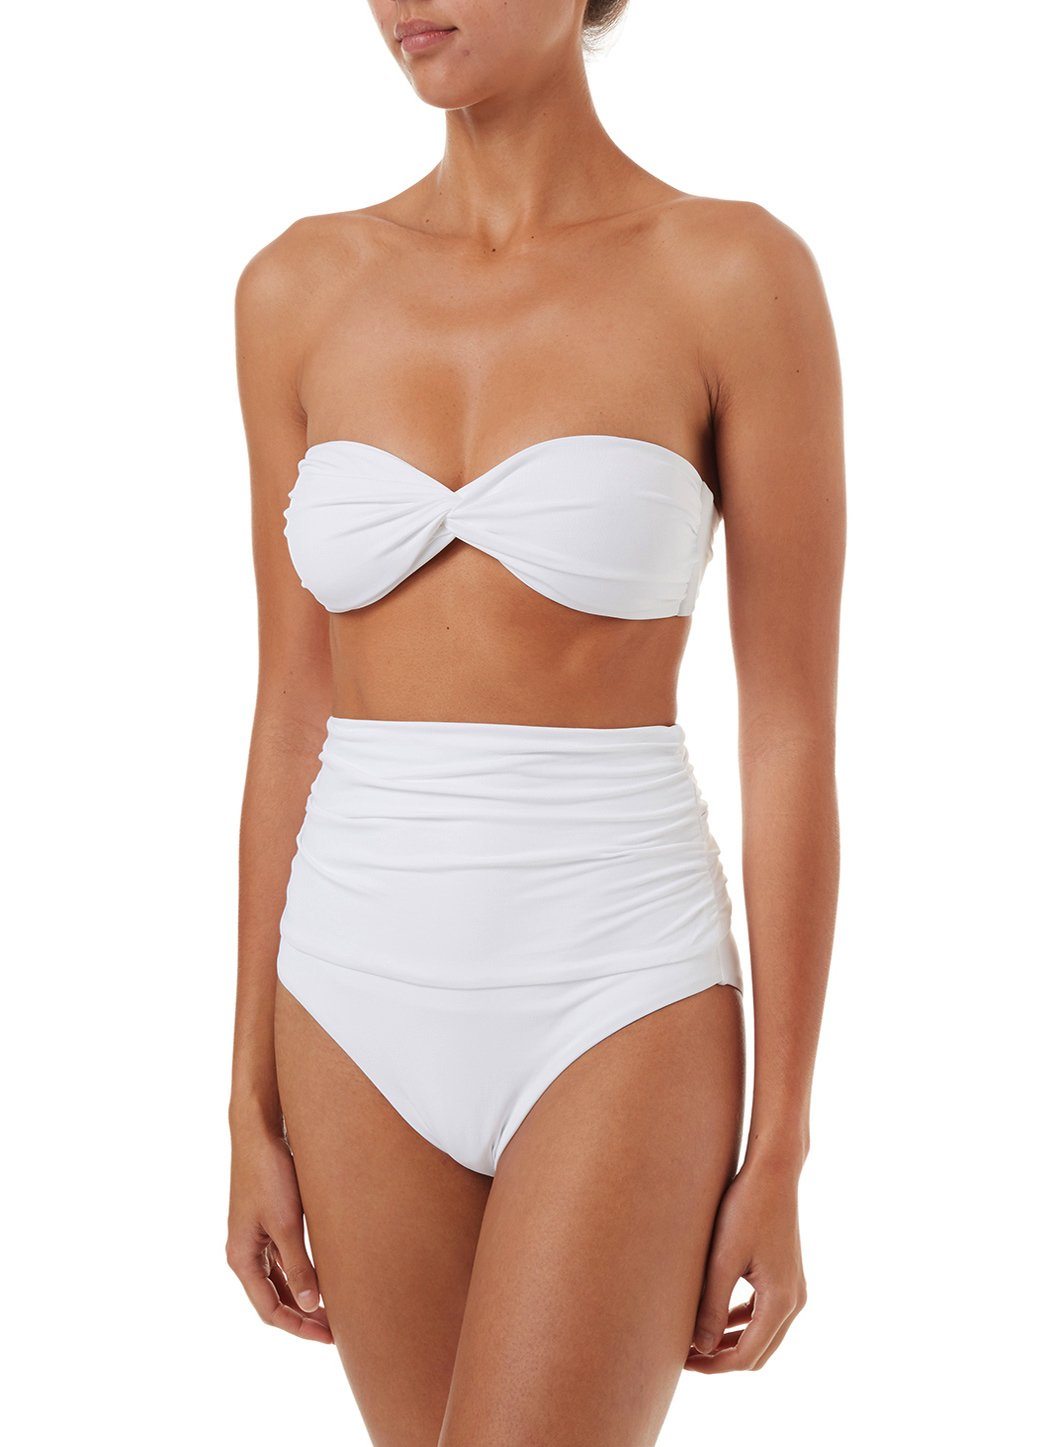 lyon white highwaisted bandeau bikini 2019 F